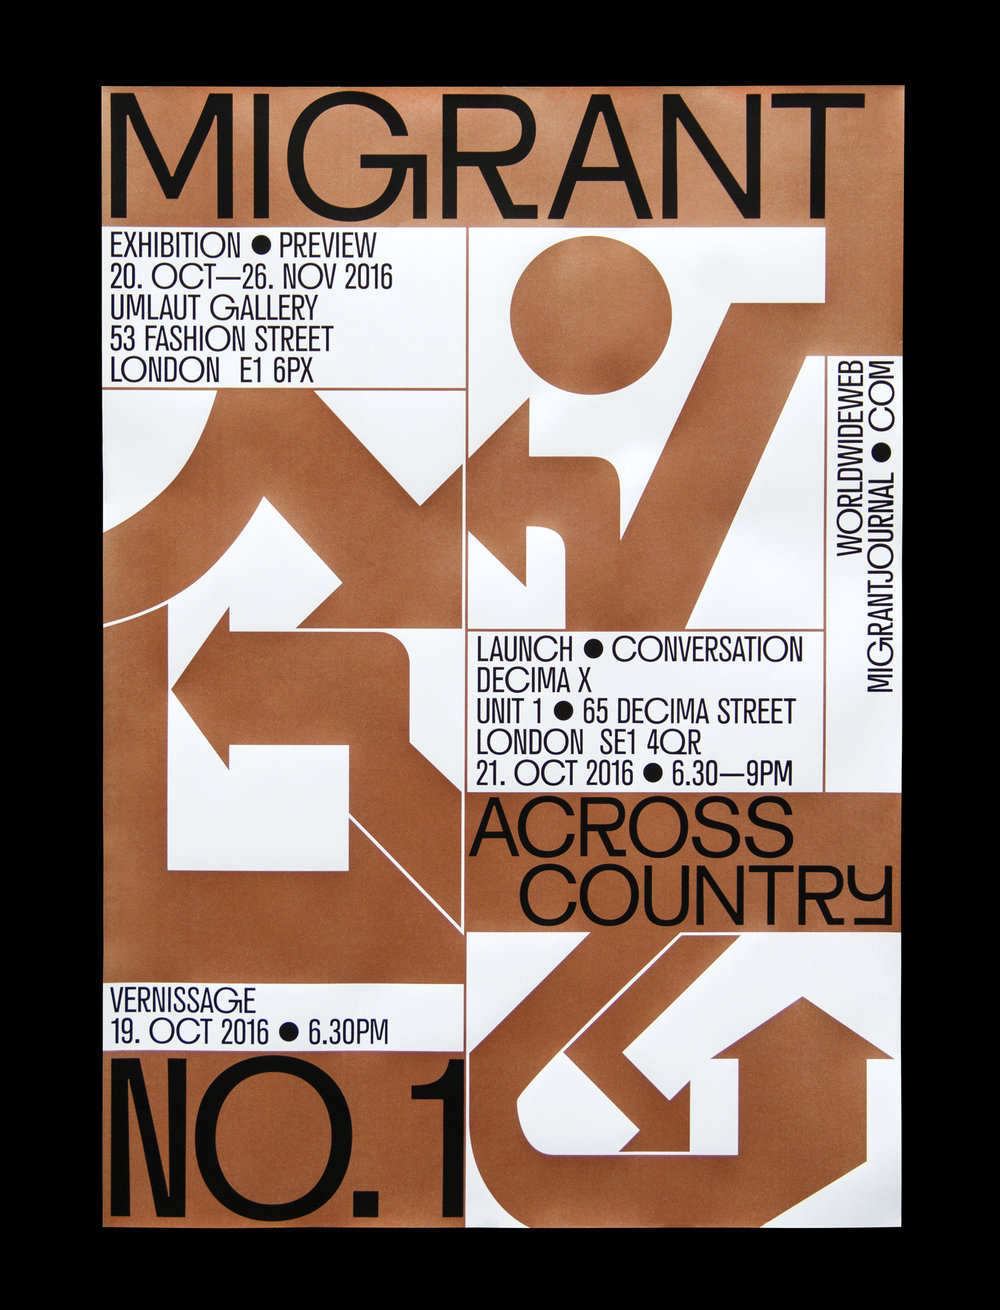 Migrant_Journal_27.jpg